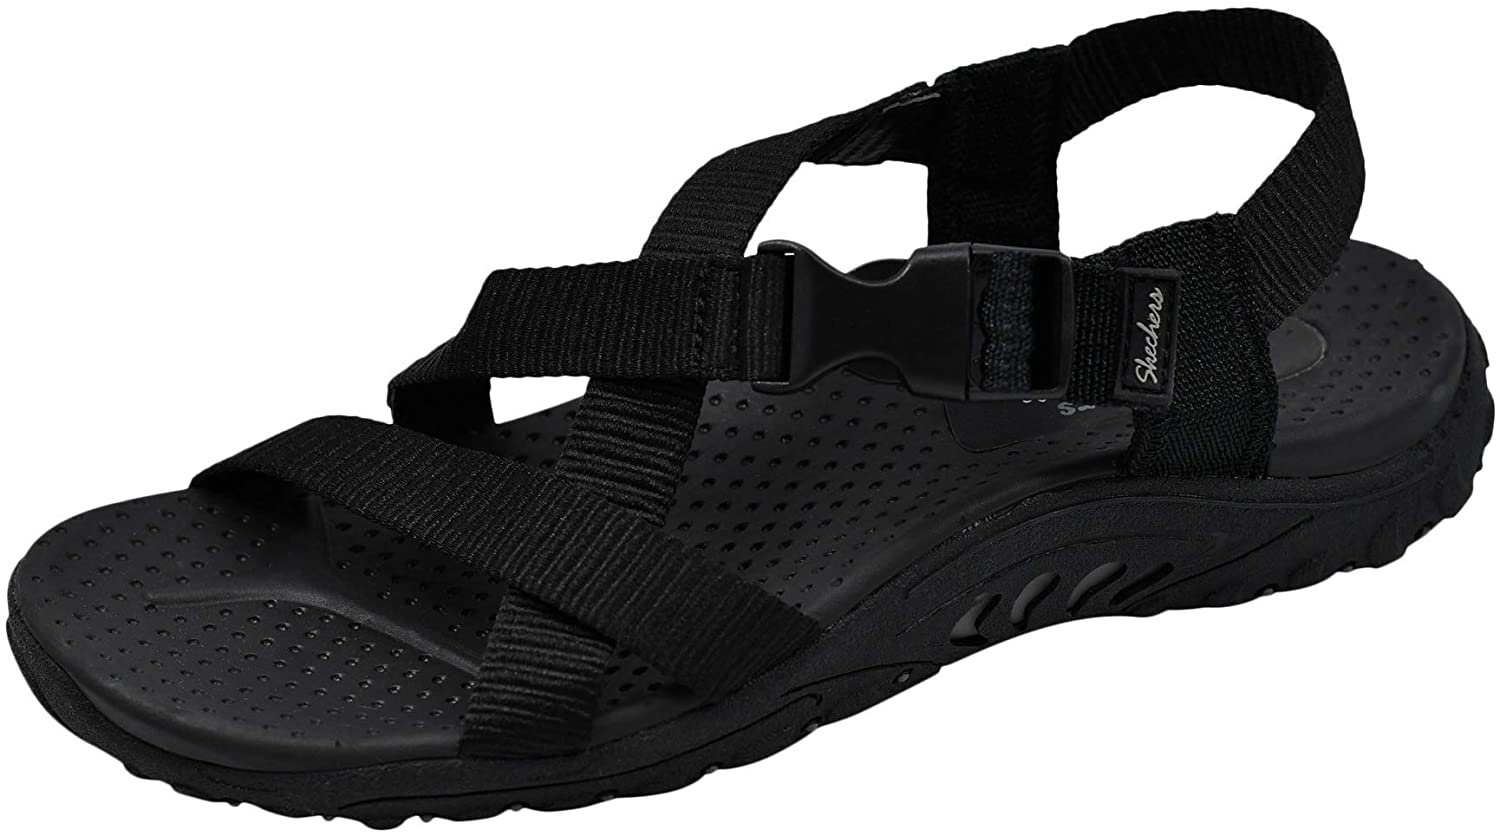 Skechers Women/'s Reggae-Kooky Flat Sandal Choose SZ//color